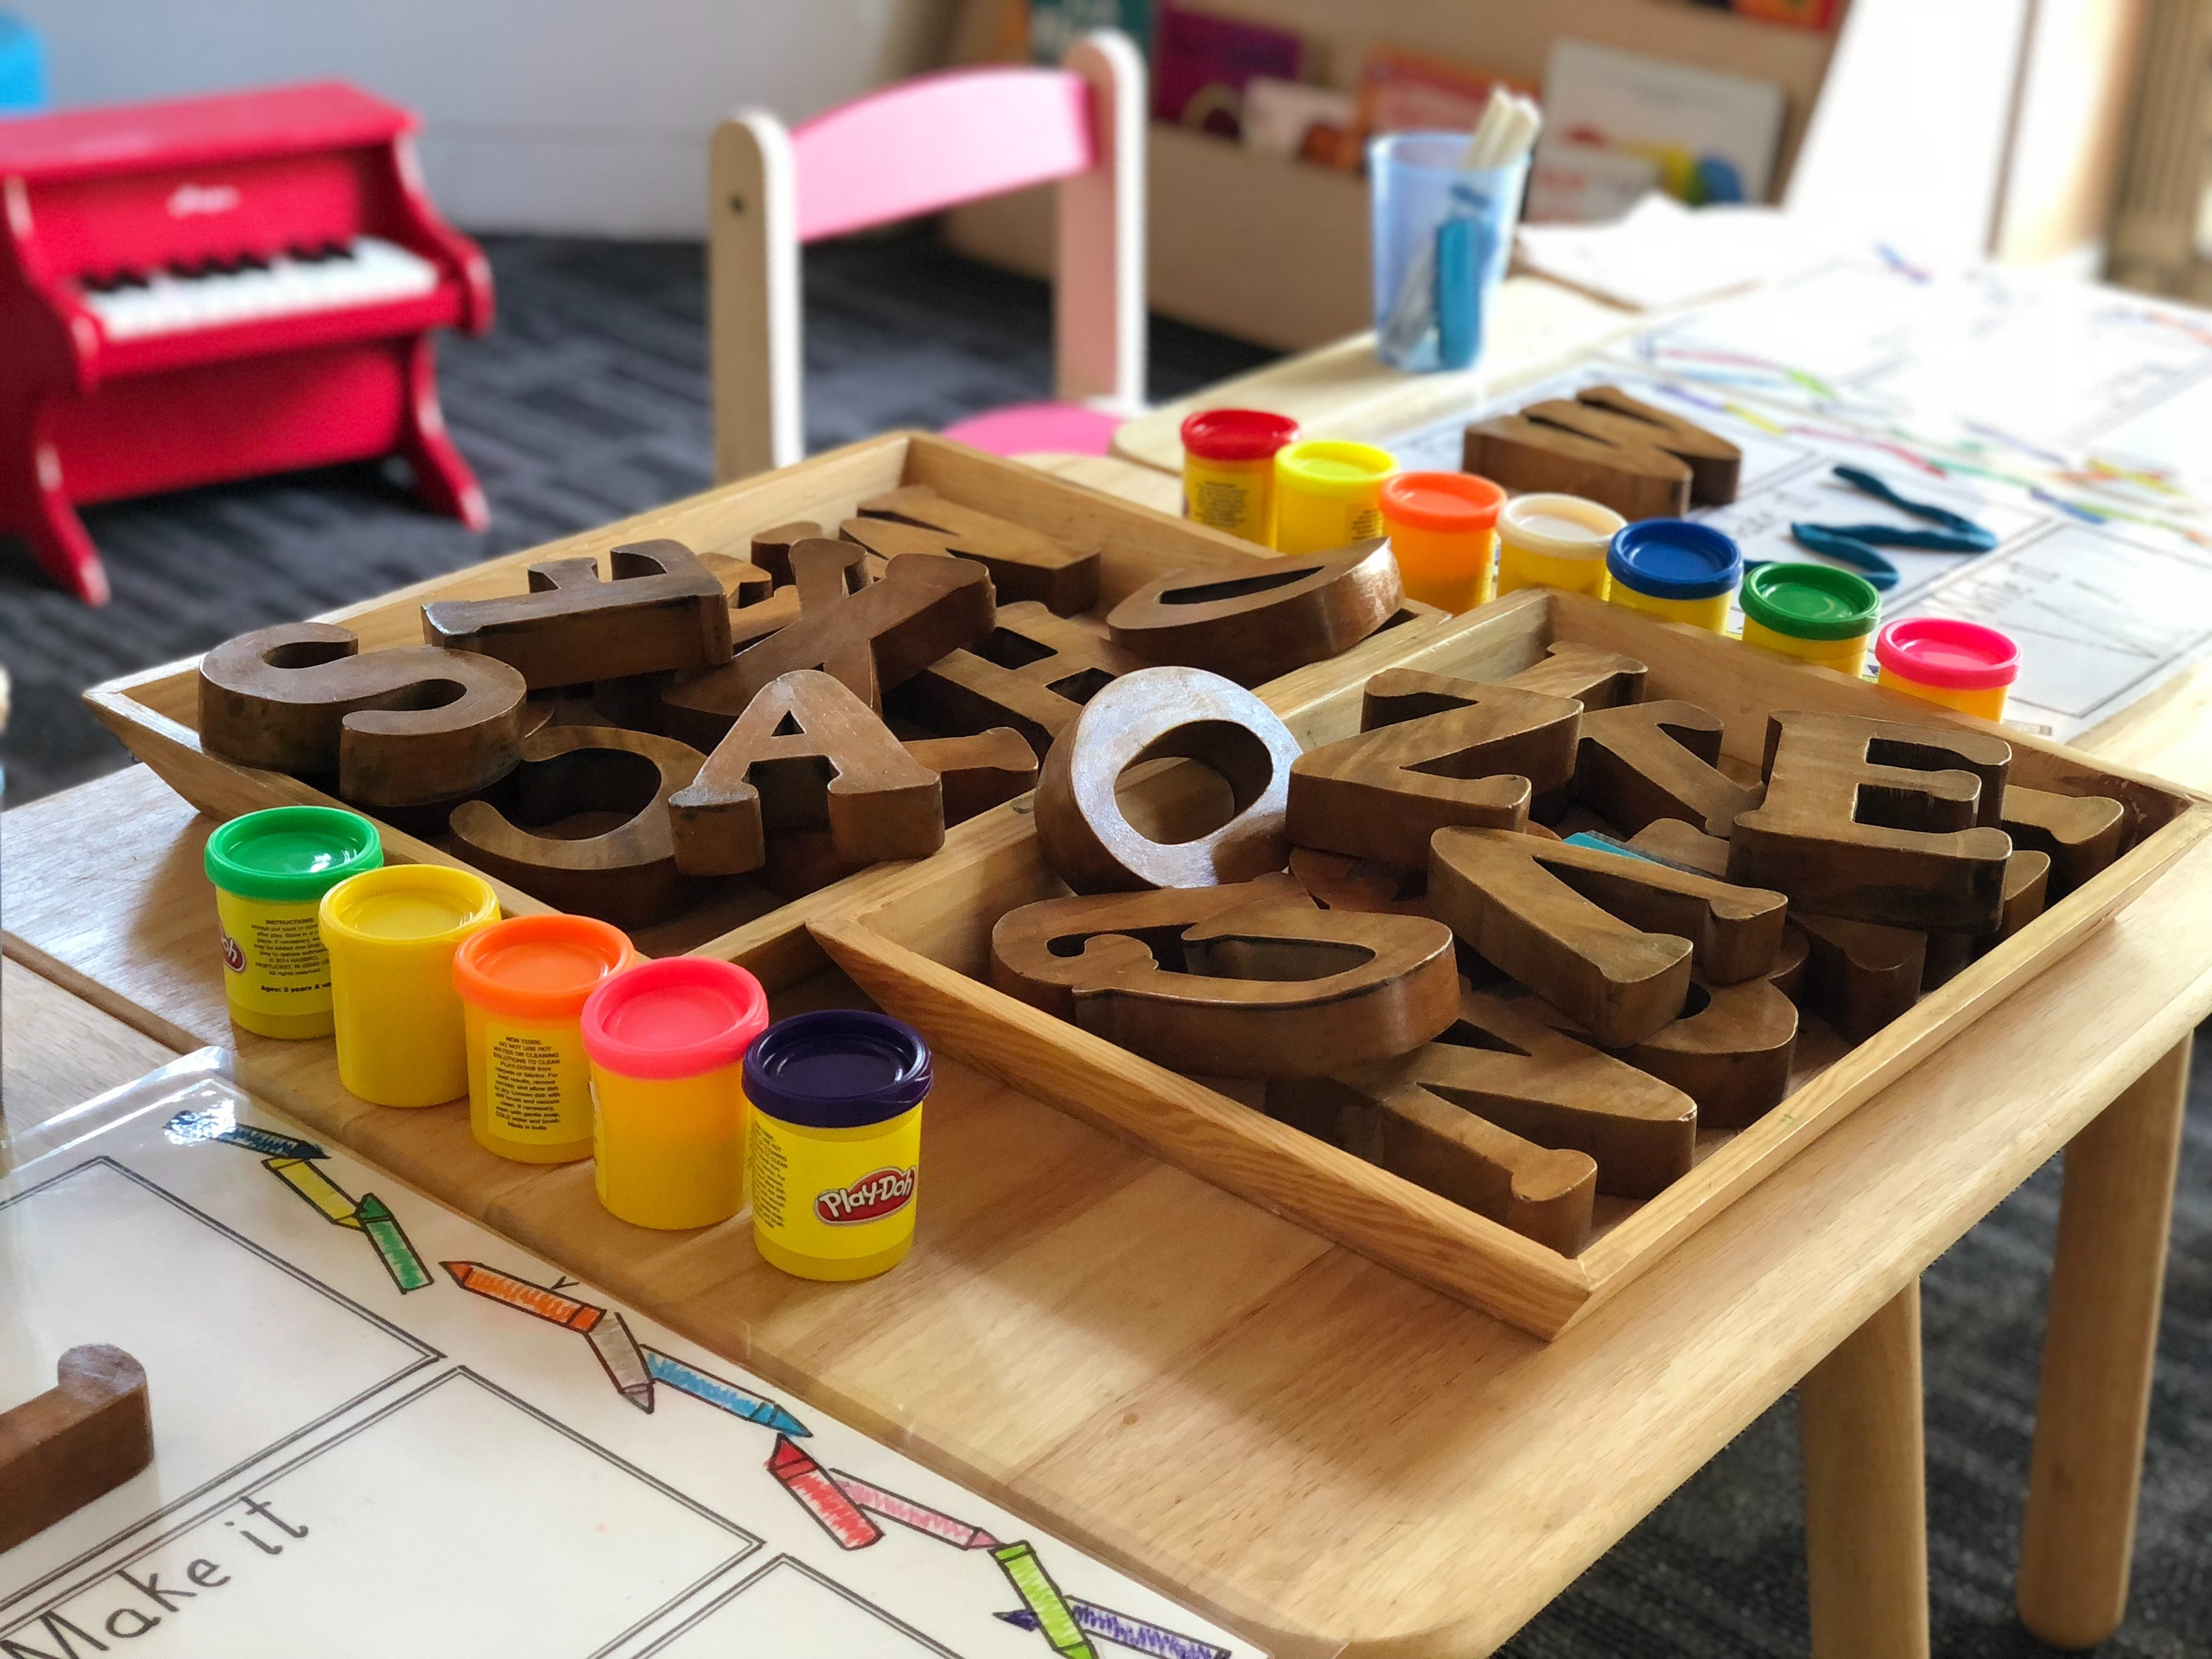 5 Ways to Re-Invent Play-Doh from the Perspective of an Occupational Therapist